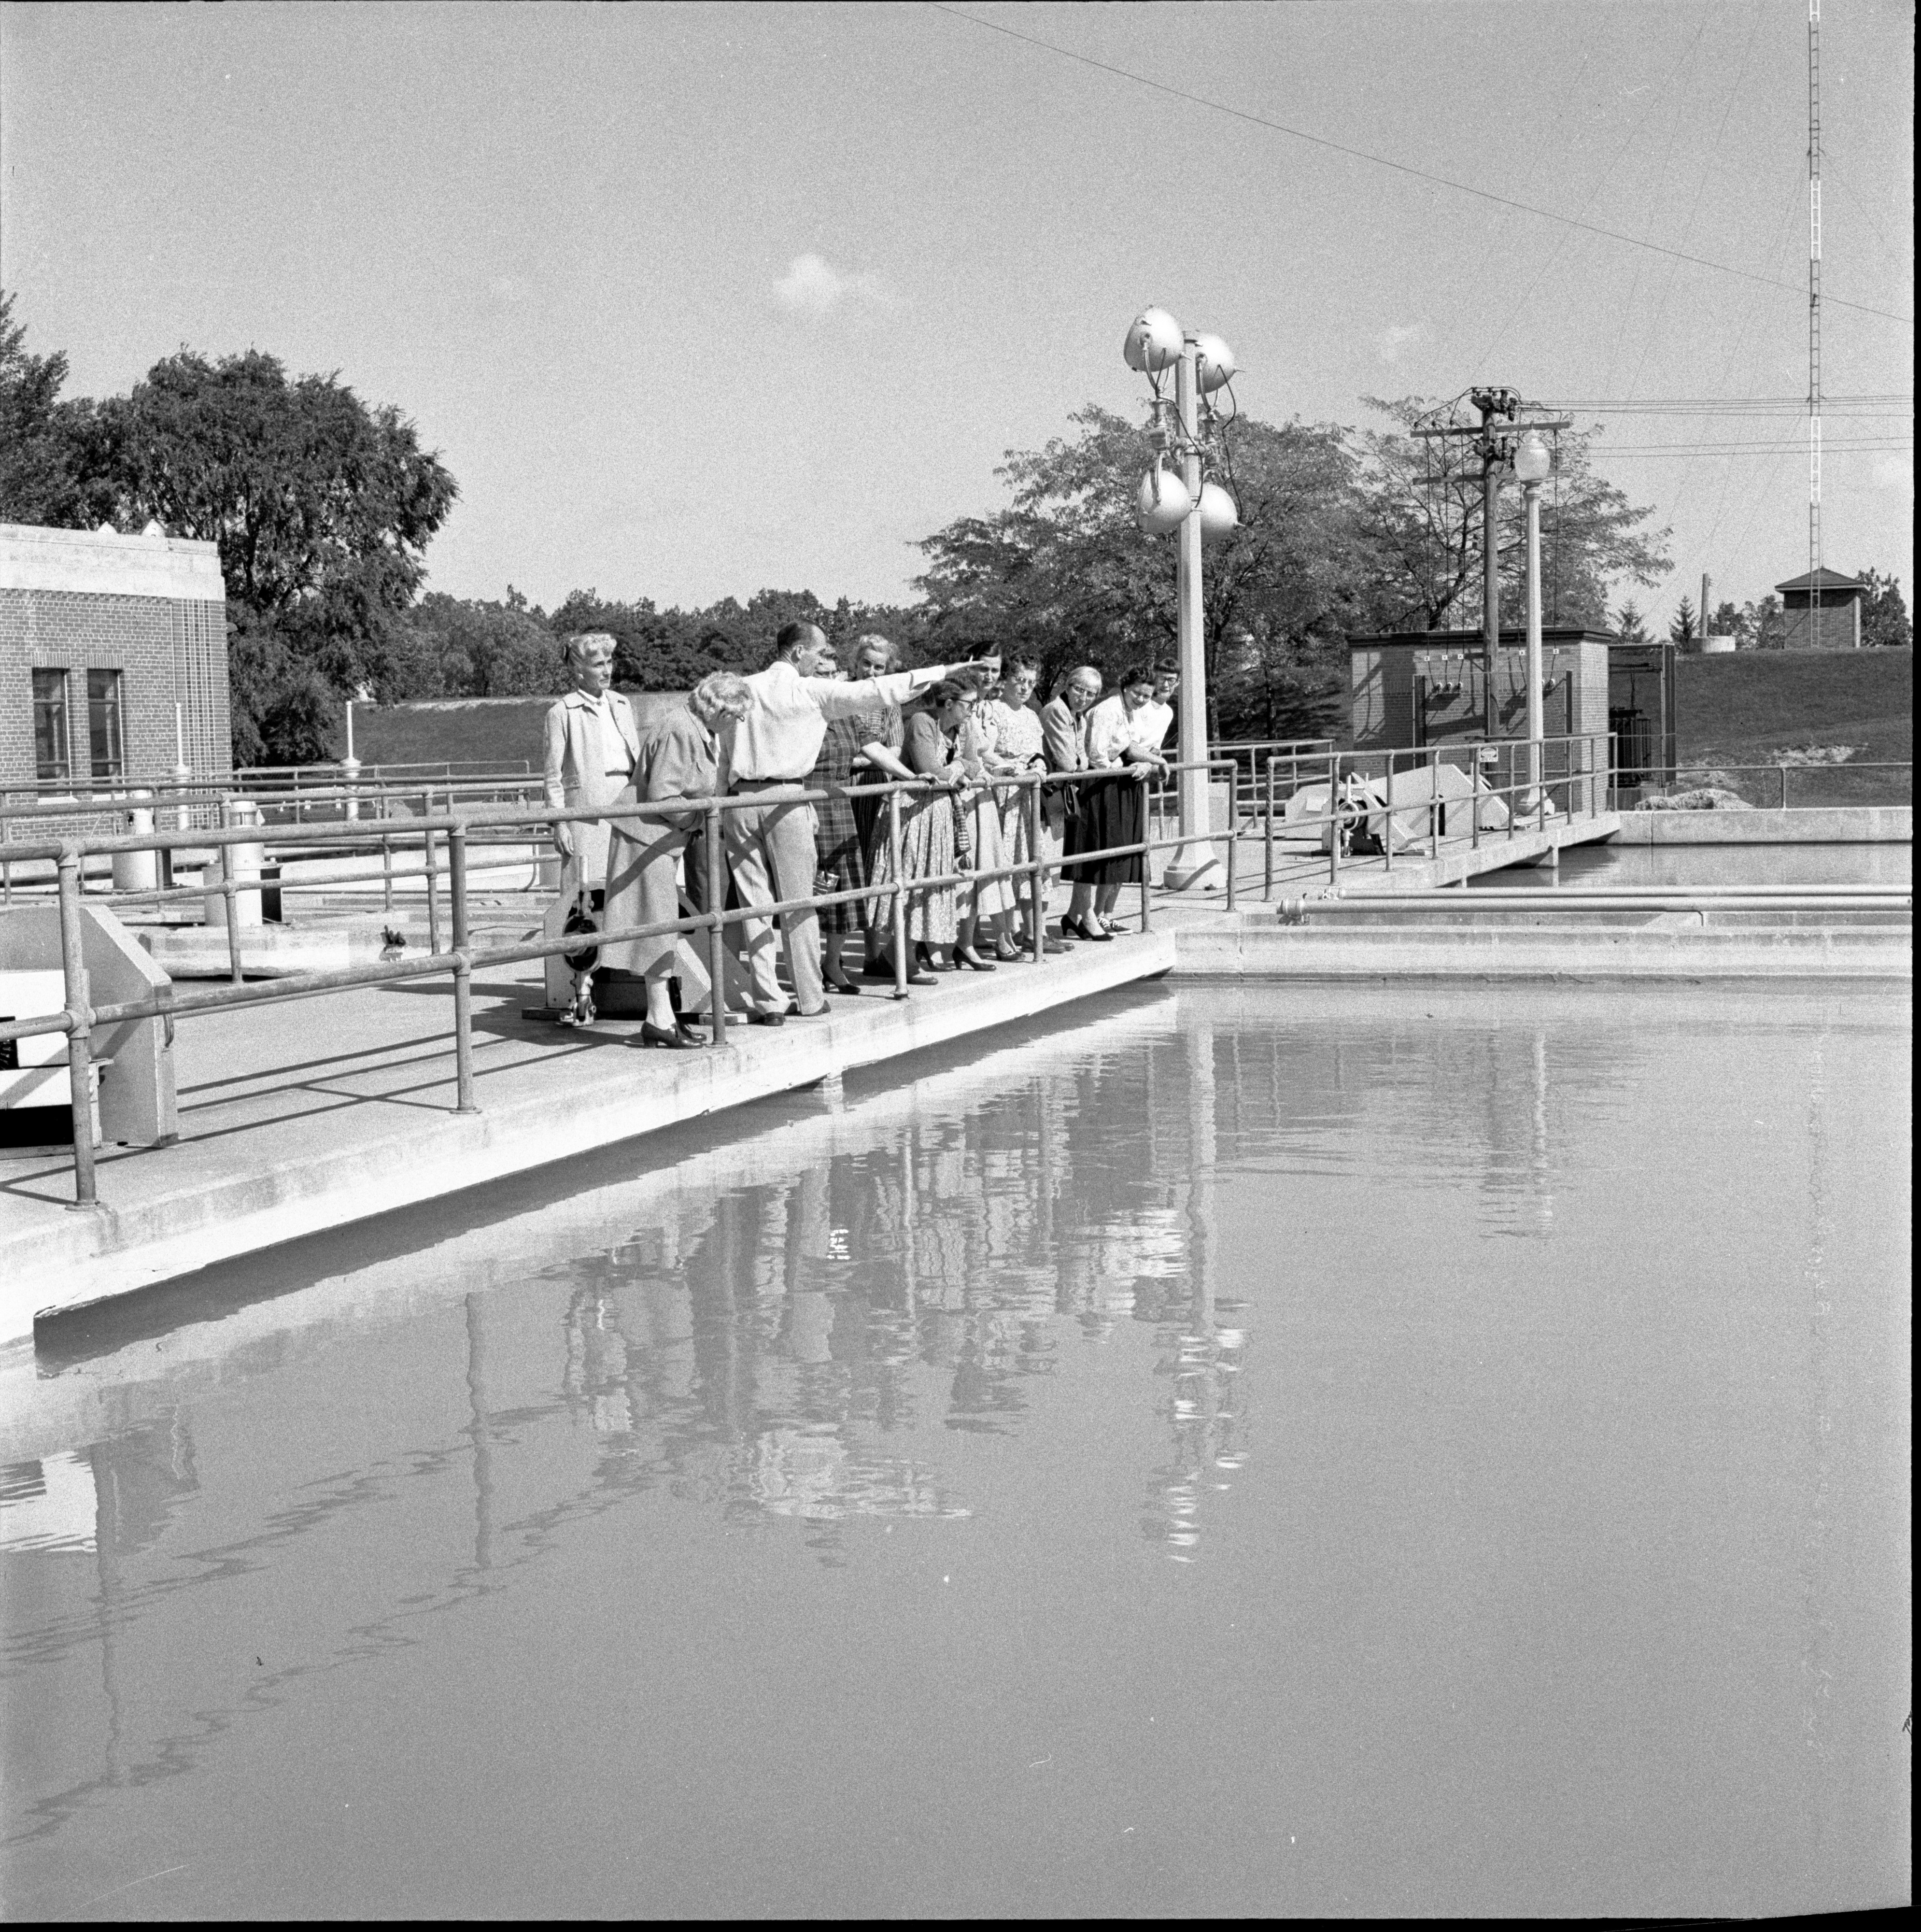 Members Of The Ann Arbor League Of Women Voters Tour The City's Water Softening Plant, October 1957 image